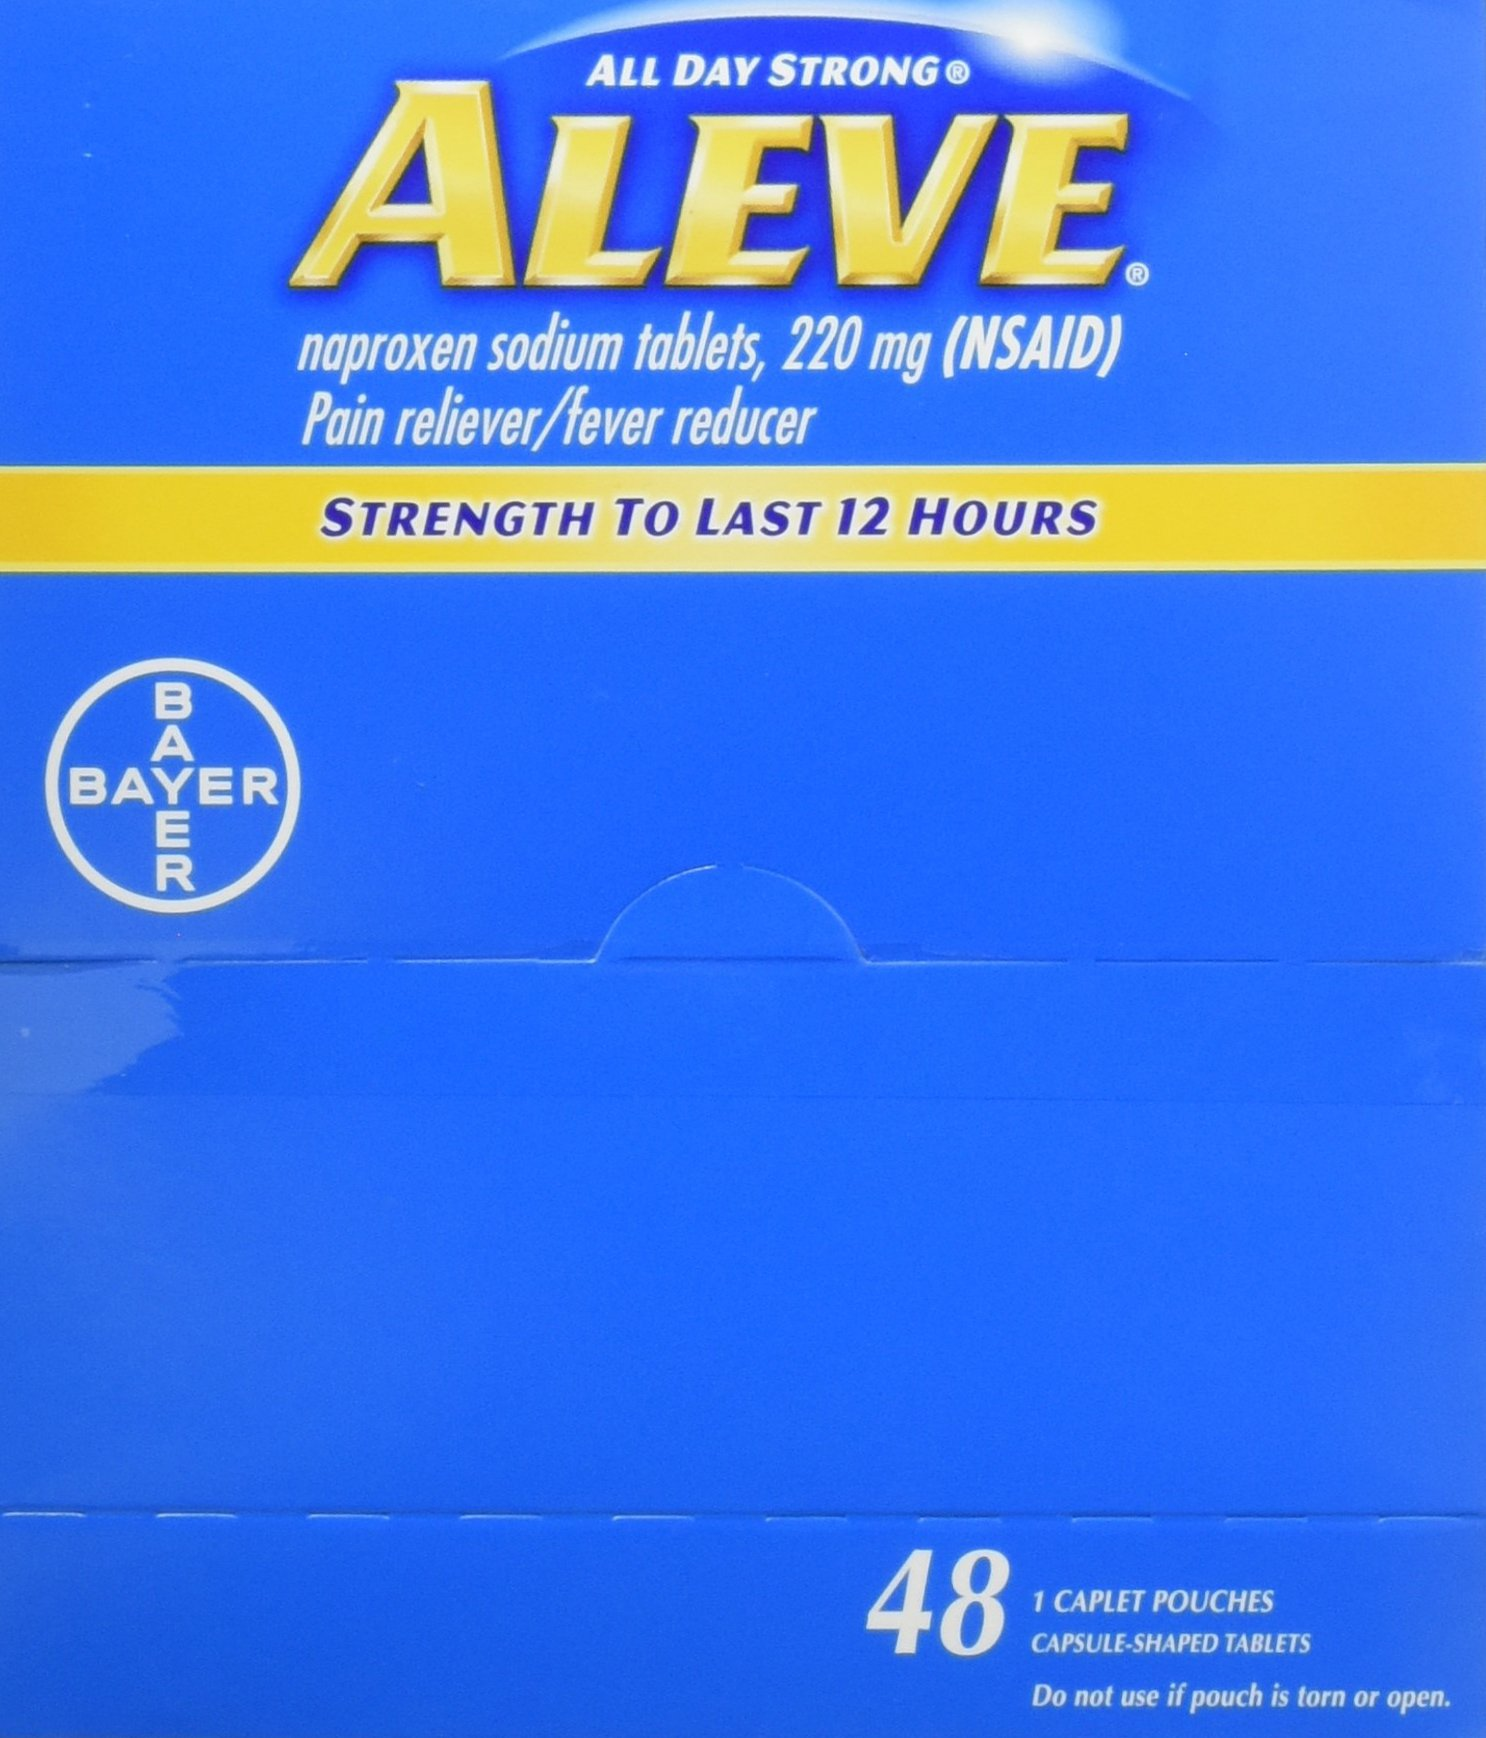 Aleve All Day Strong Naproxen Sodium Tablets 220 Mg - 1 Ea (48 Pack)